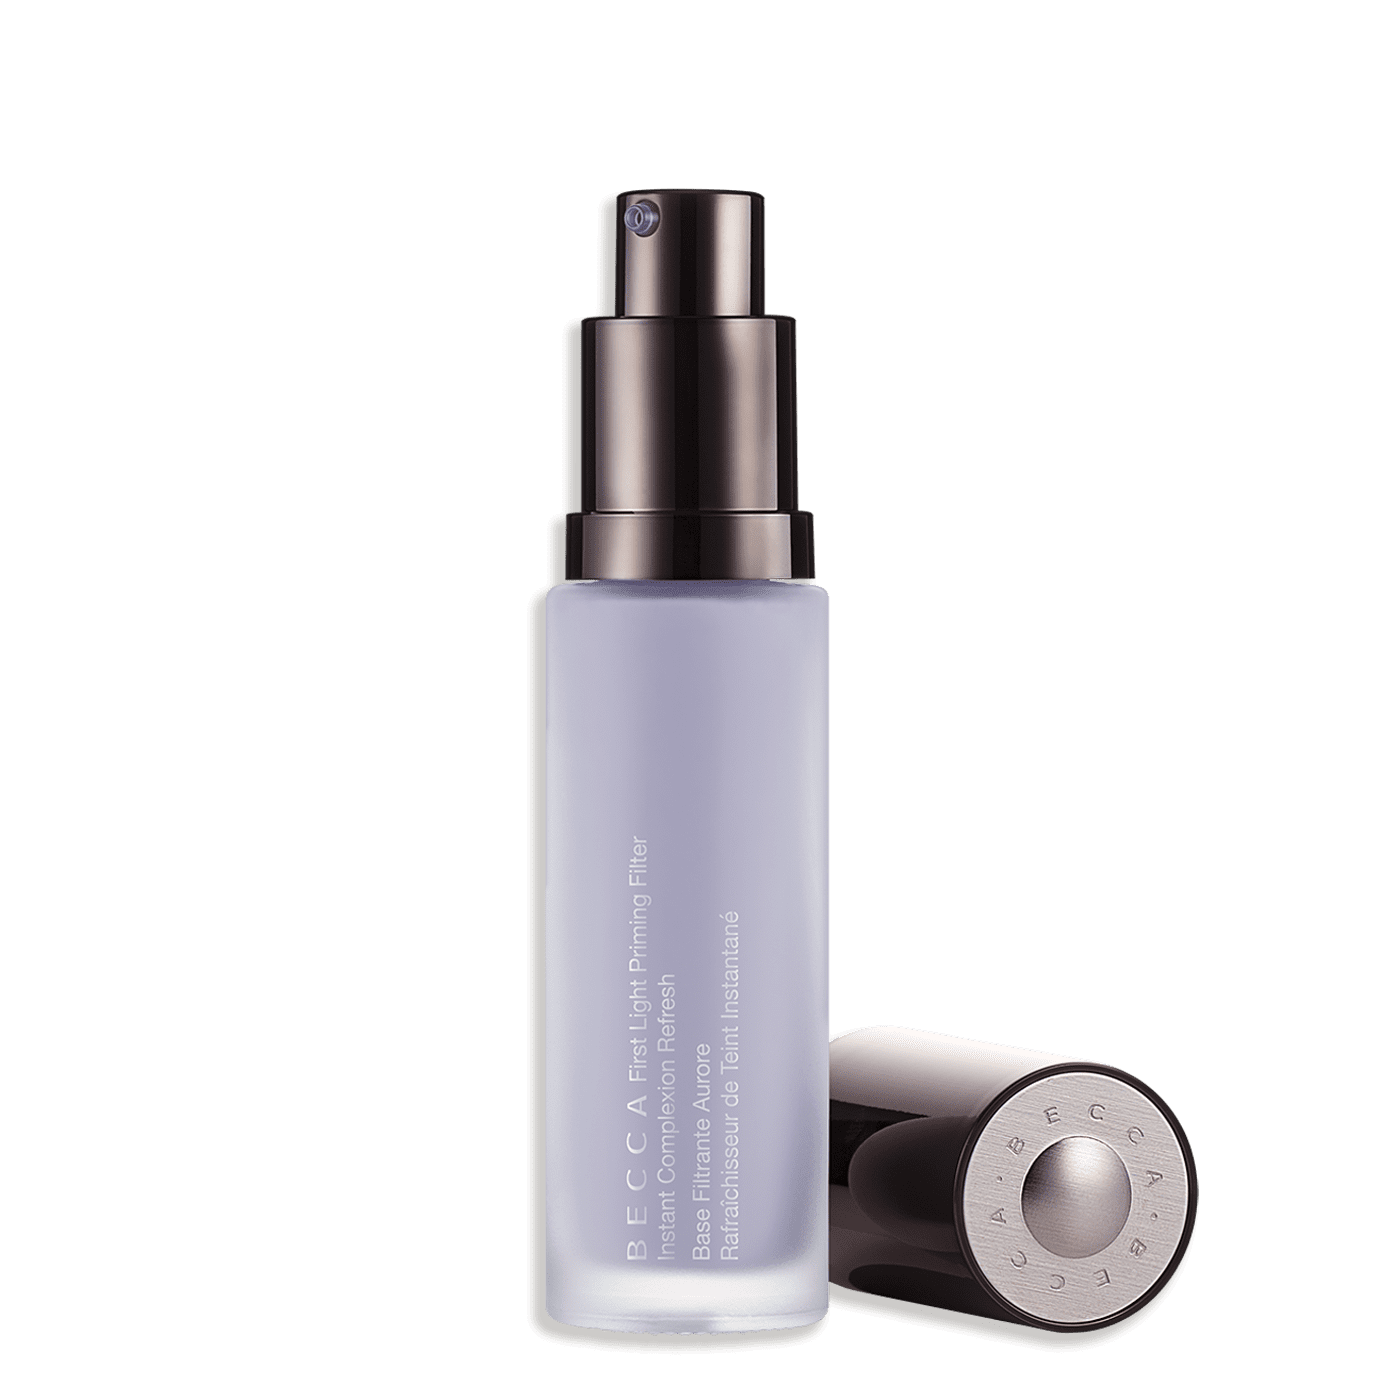 Becca-first-light-priming-filter-radiant-fresh-base-more-hydration-more-glow